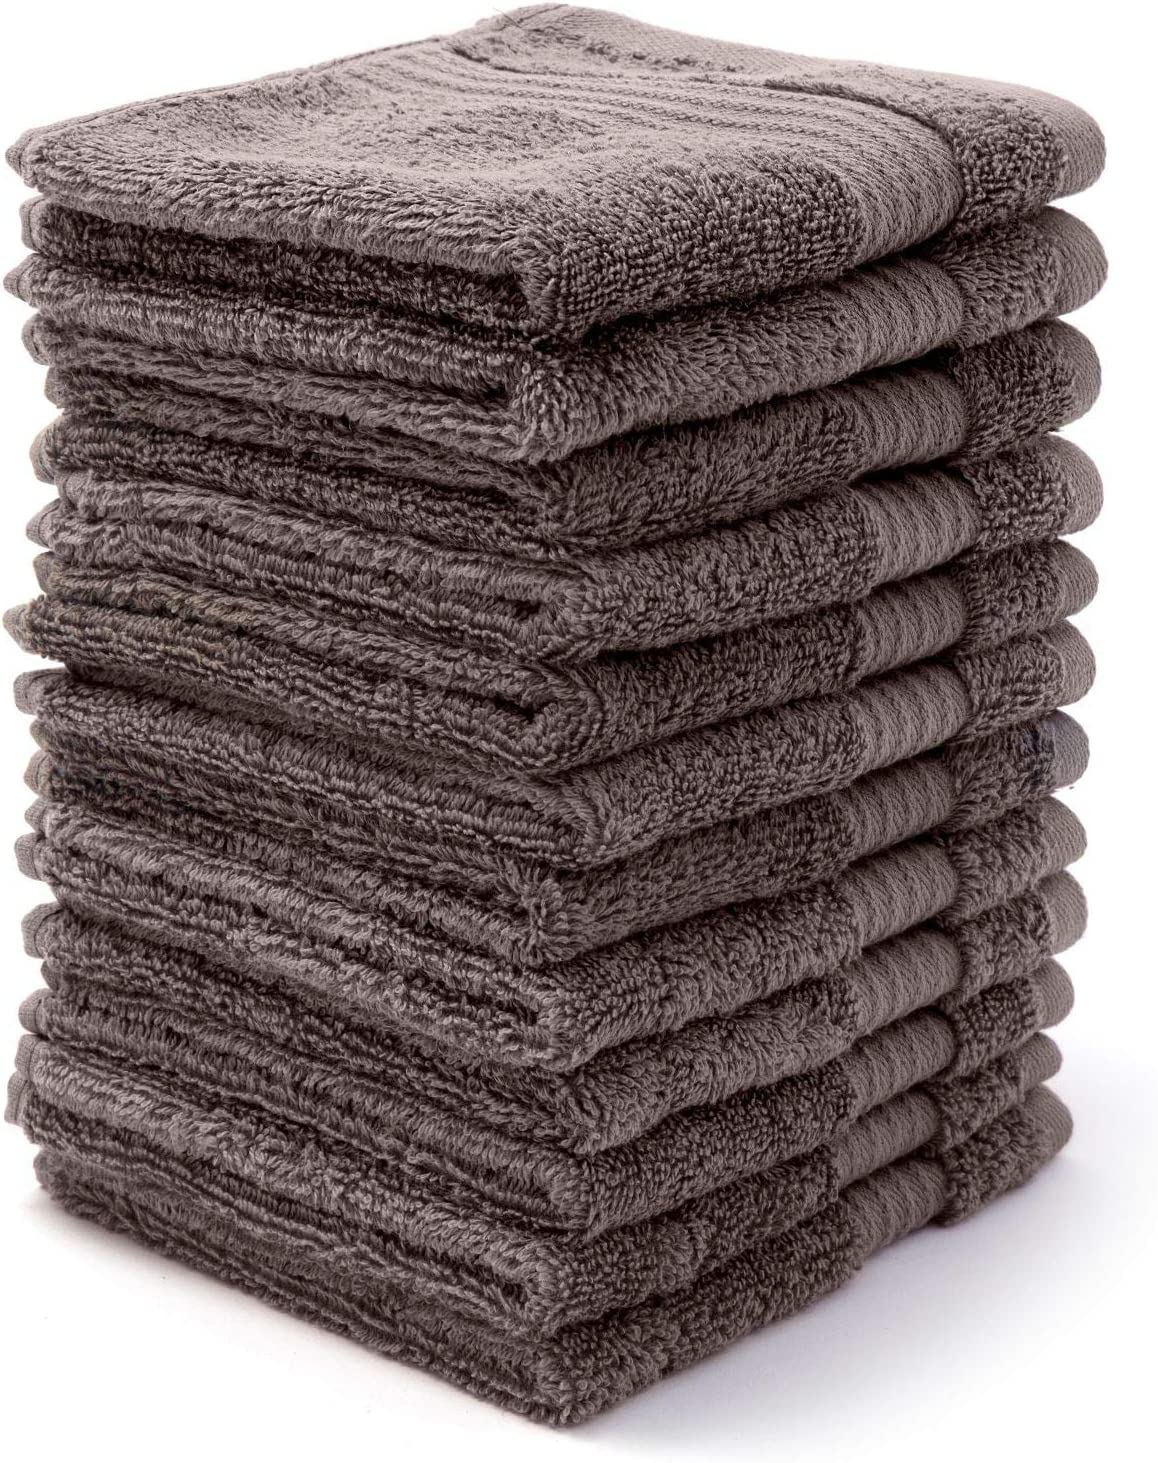 """Bliss Towels 12 Pack Wash Cloth Set - 12"""" x 12"""" - Wash Cloth - 650 GSM - Soft Combed Cotton, Absorbent (Grey)"""